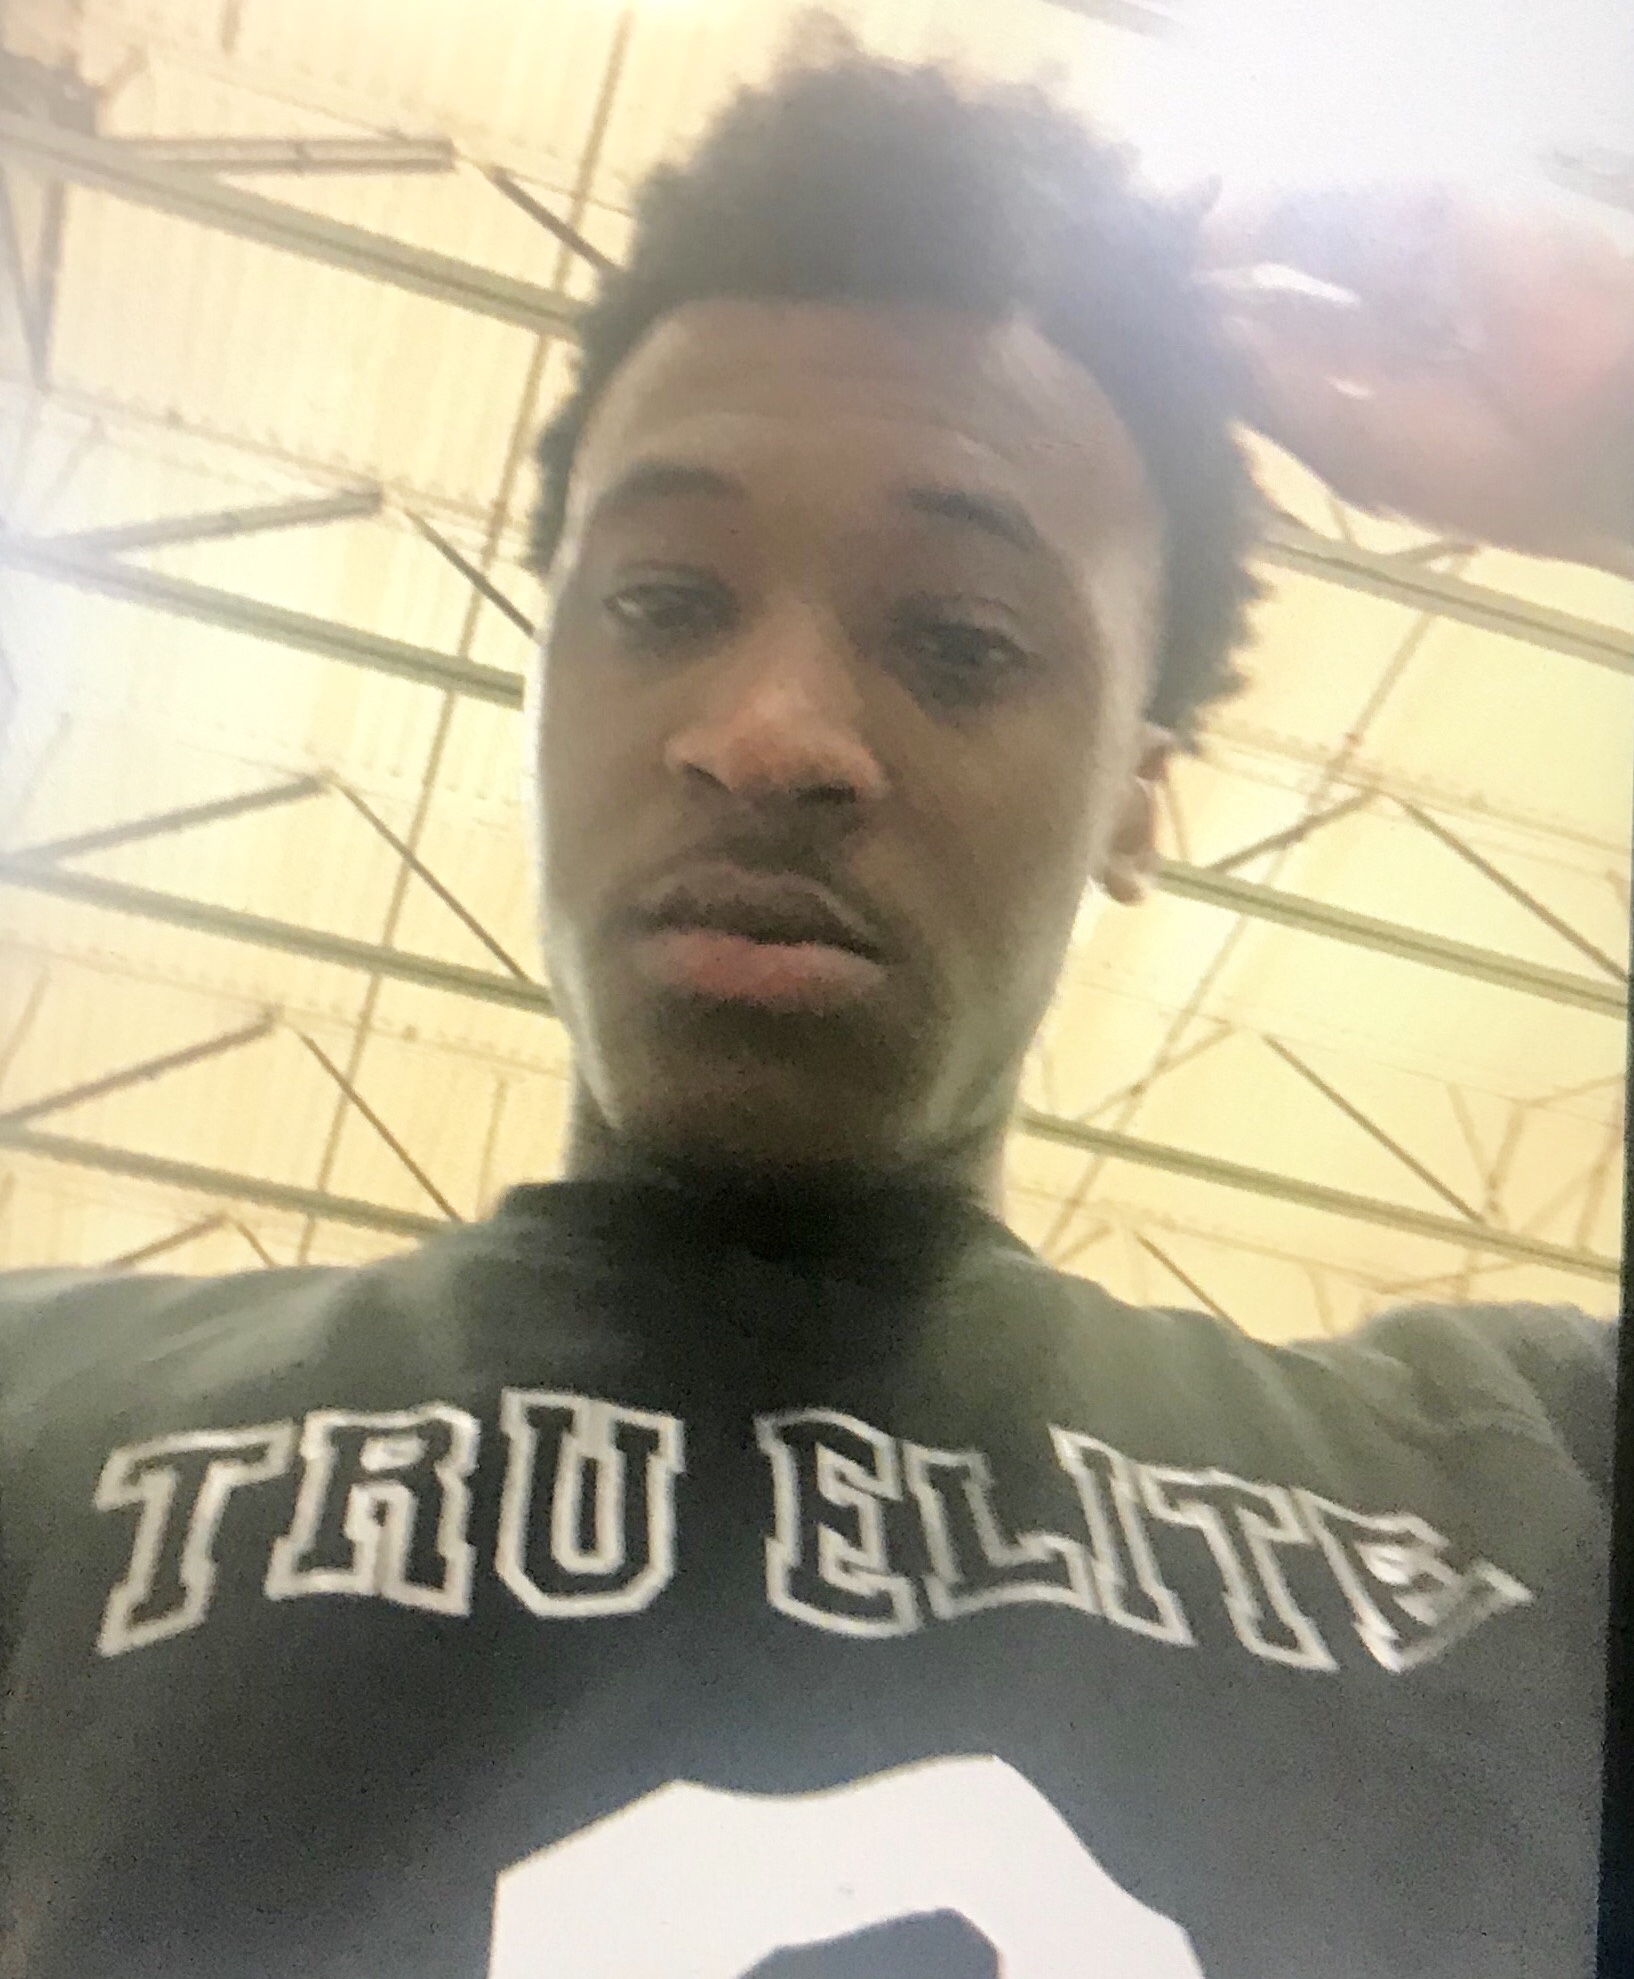 '17-year-old' basketball star is actually much older, police say